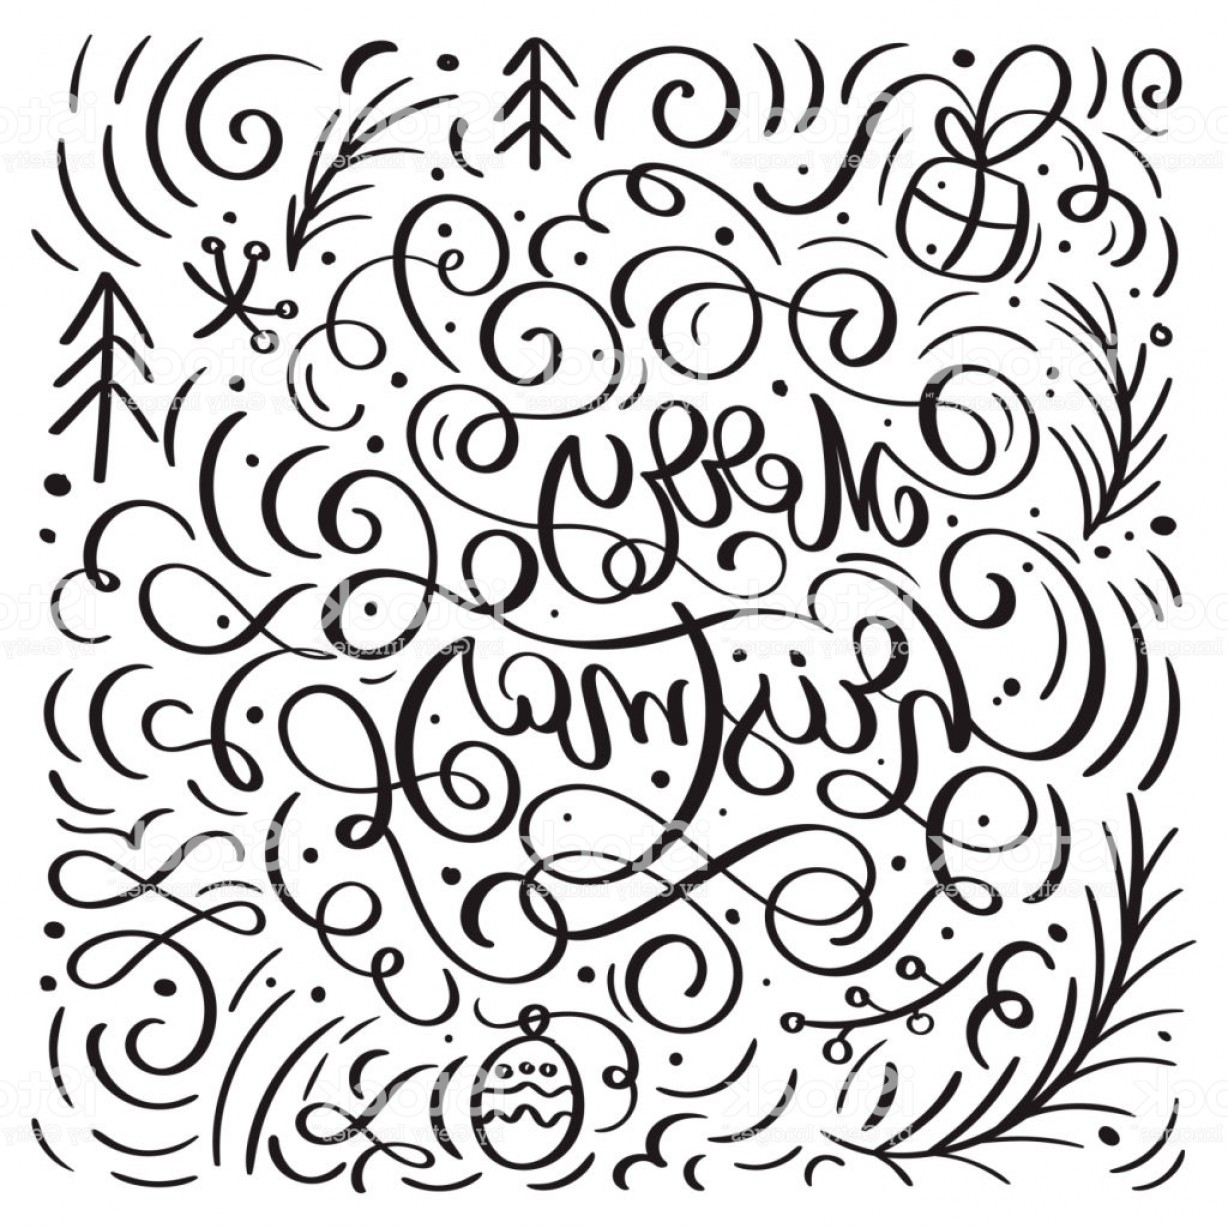 Vector Flourish Christmas: Merry Christmas On A White Background With Flourish Vector Xmas Elements Of Gm